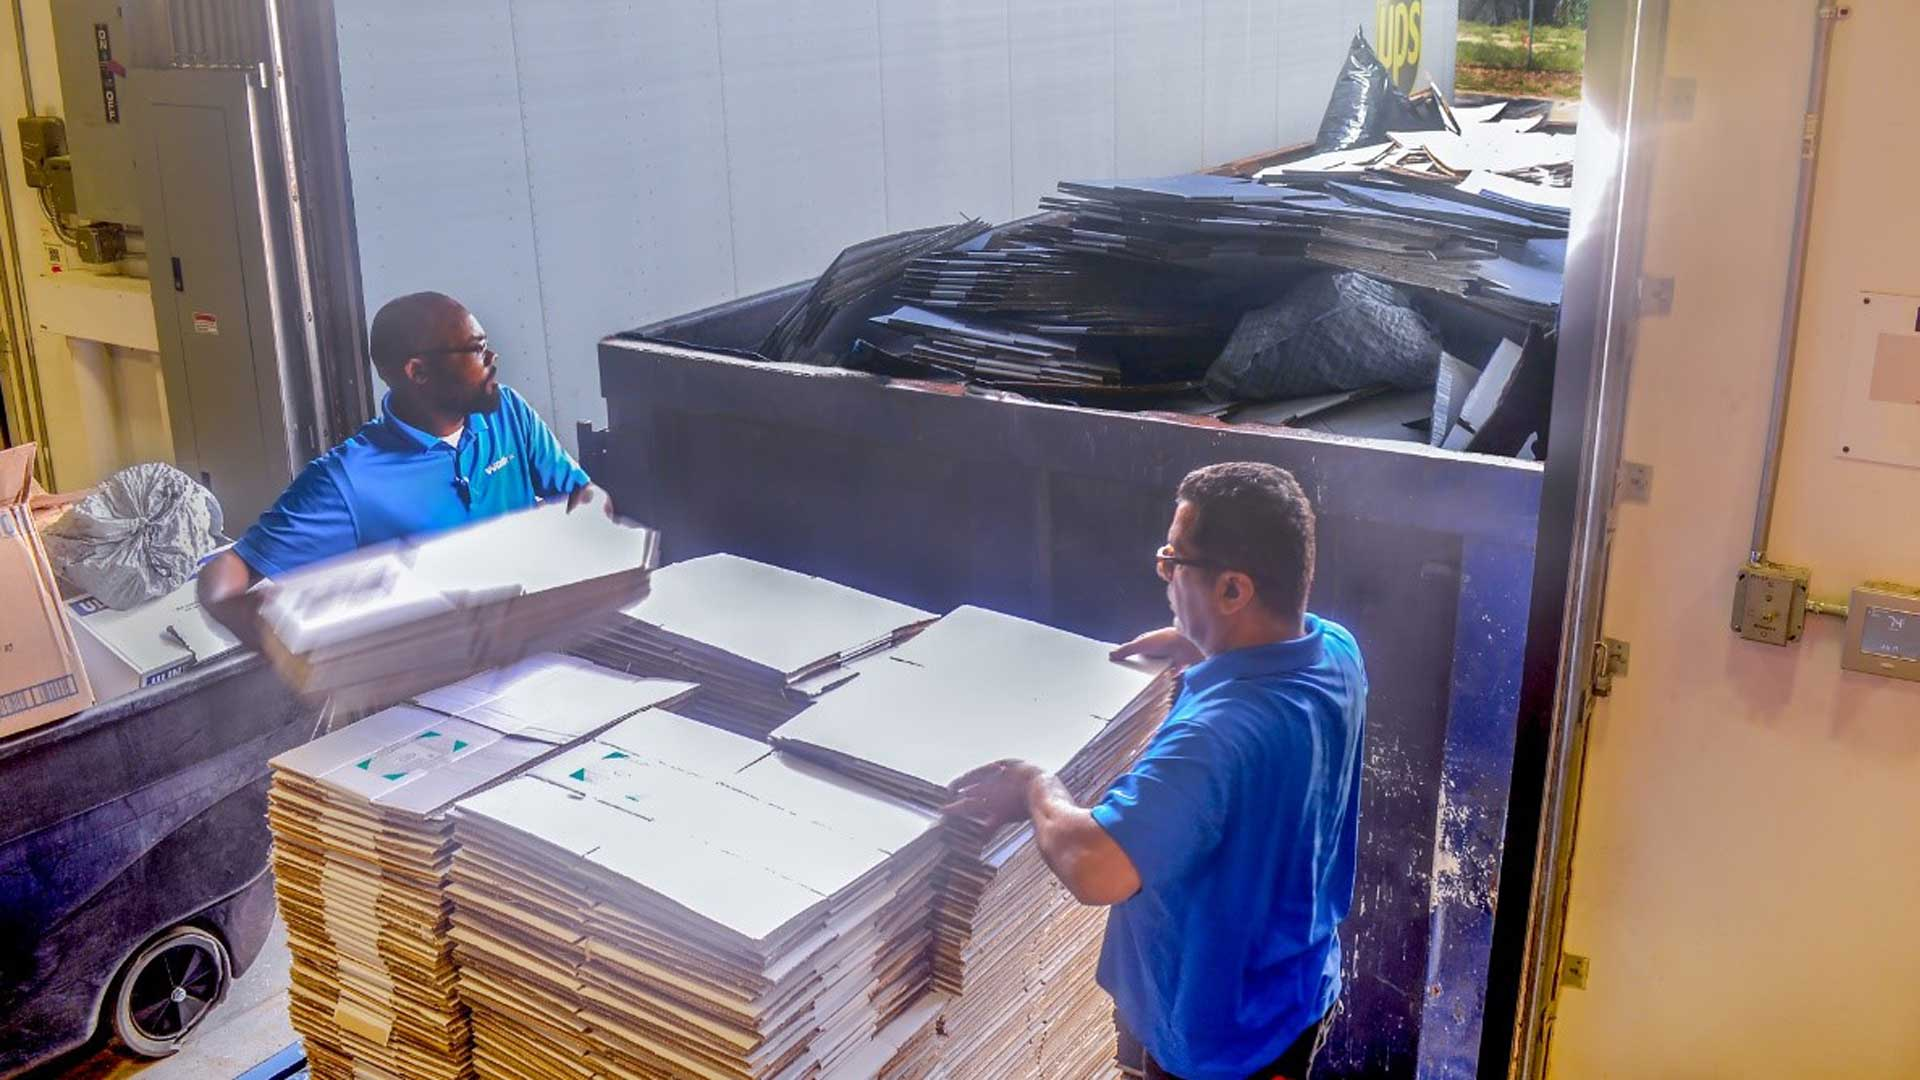 Sustainability is greatly achieved through recycling corrugated cardboard.